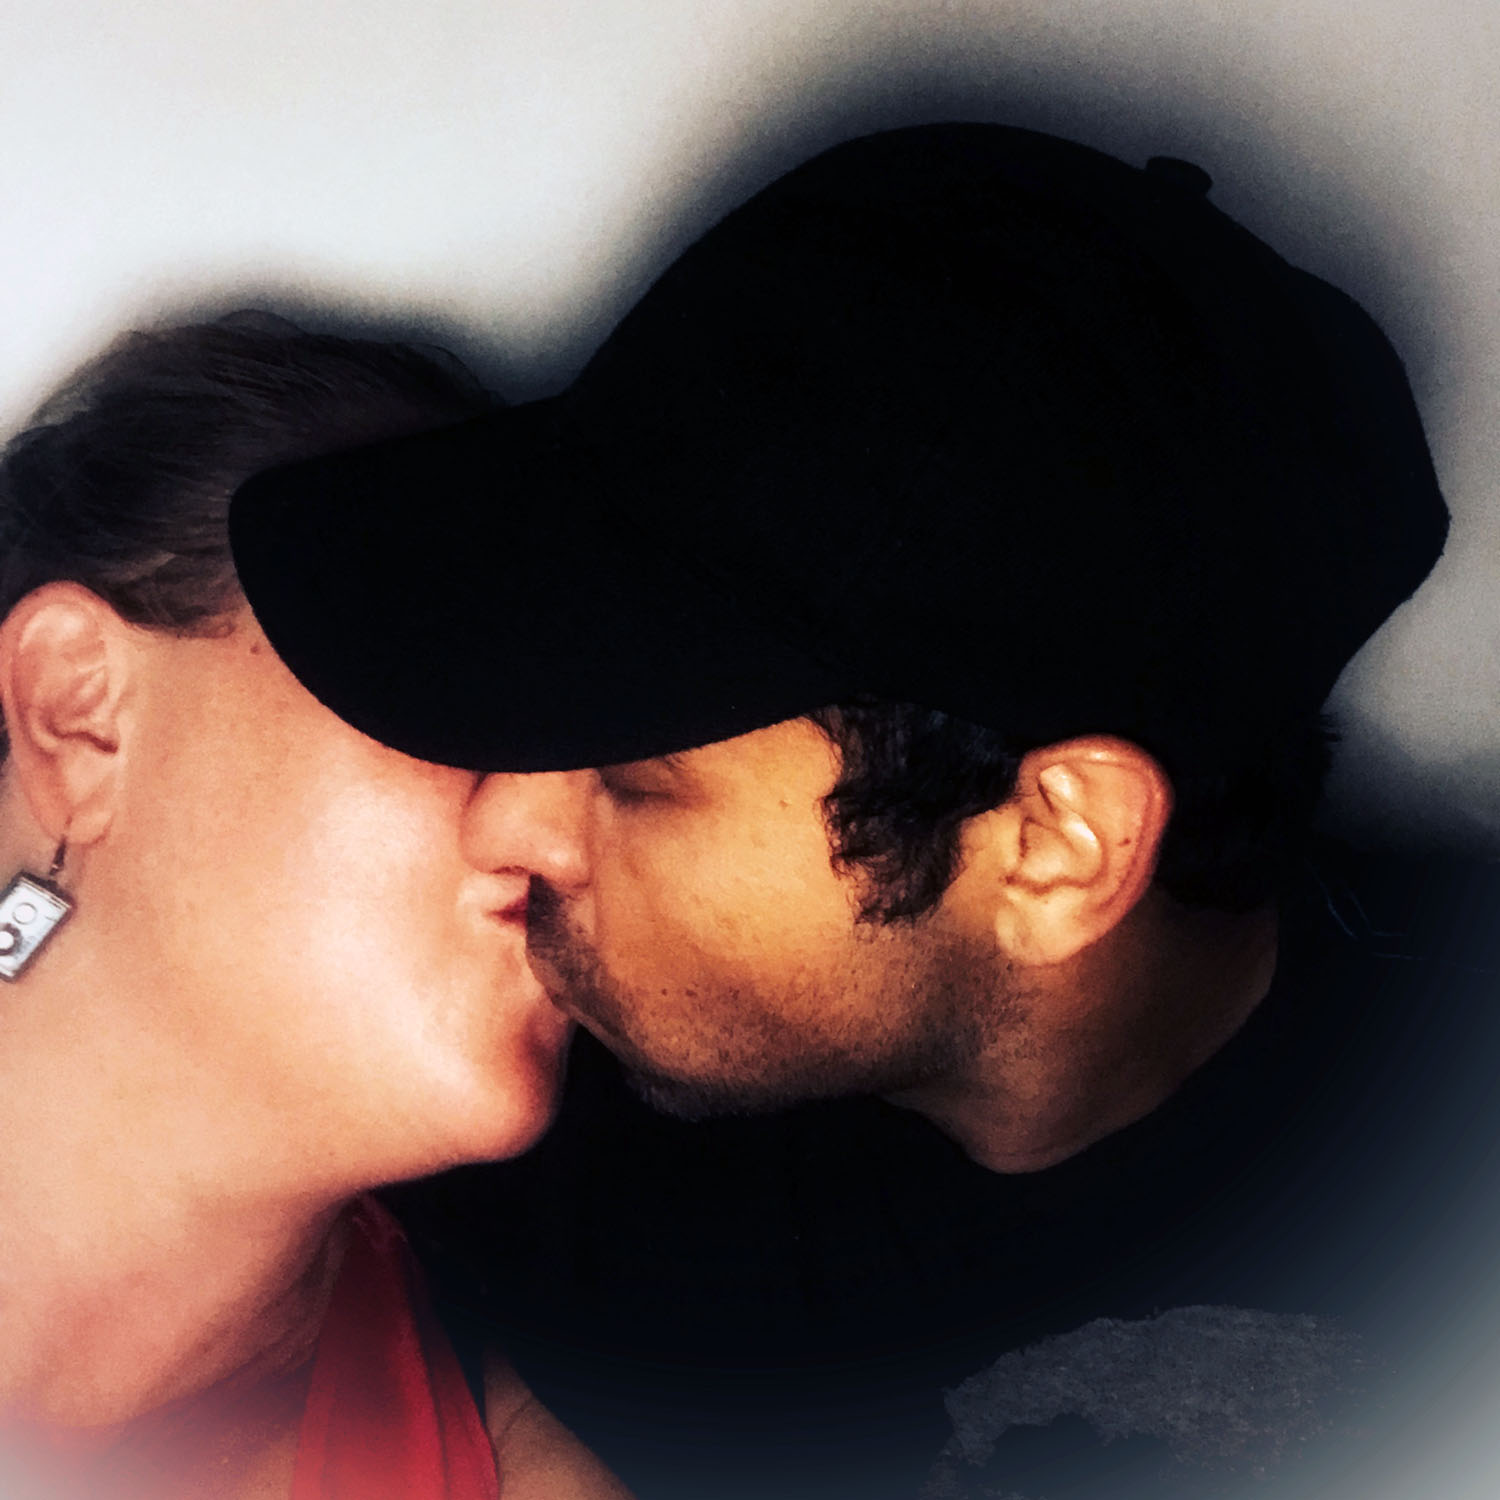 two people kissing but you can only see the sides of their faces